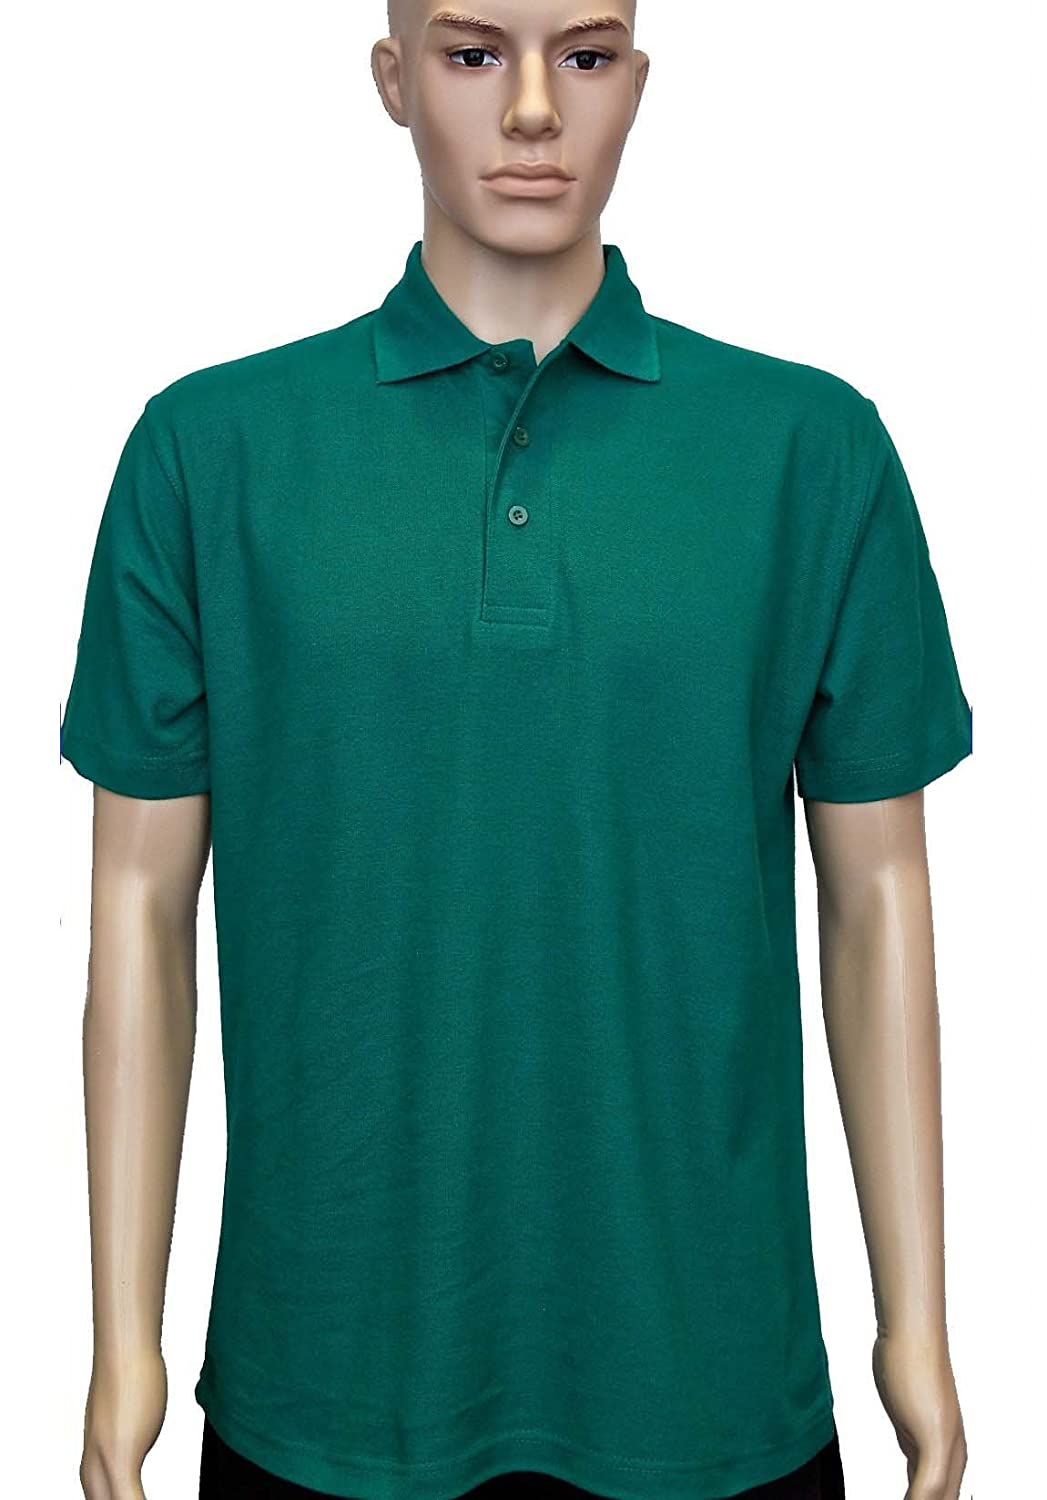 Uneek UC101 Polyester/Cotton Unisex Classic Pique Polo Shirt with Knitted Collar and Hemmed Sleeve Uneek Clothing Company Ltd